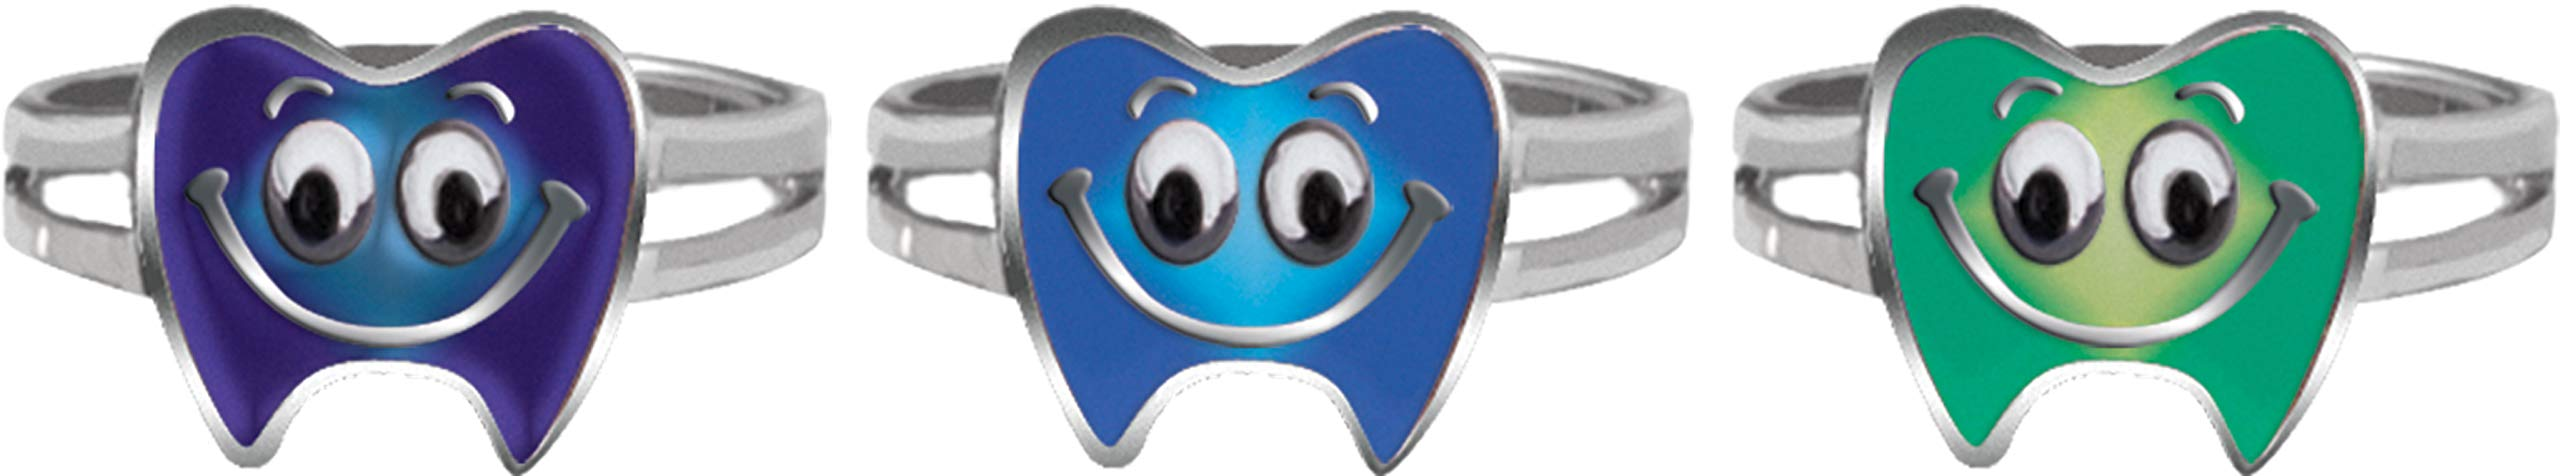 Giggle Time Kid's Tooth Mood Ring Assortment - (36) Pieces - Party Favors, Pinata Fillers, Gift Bags, Carnival Prizes, School Incentives